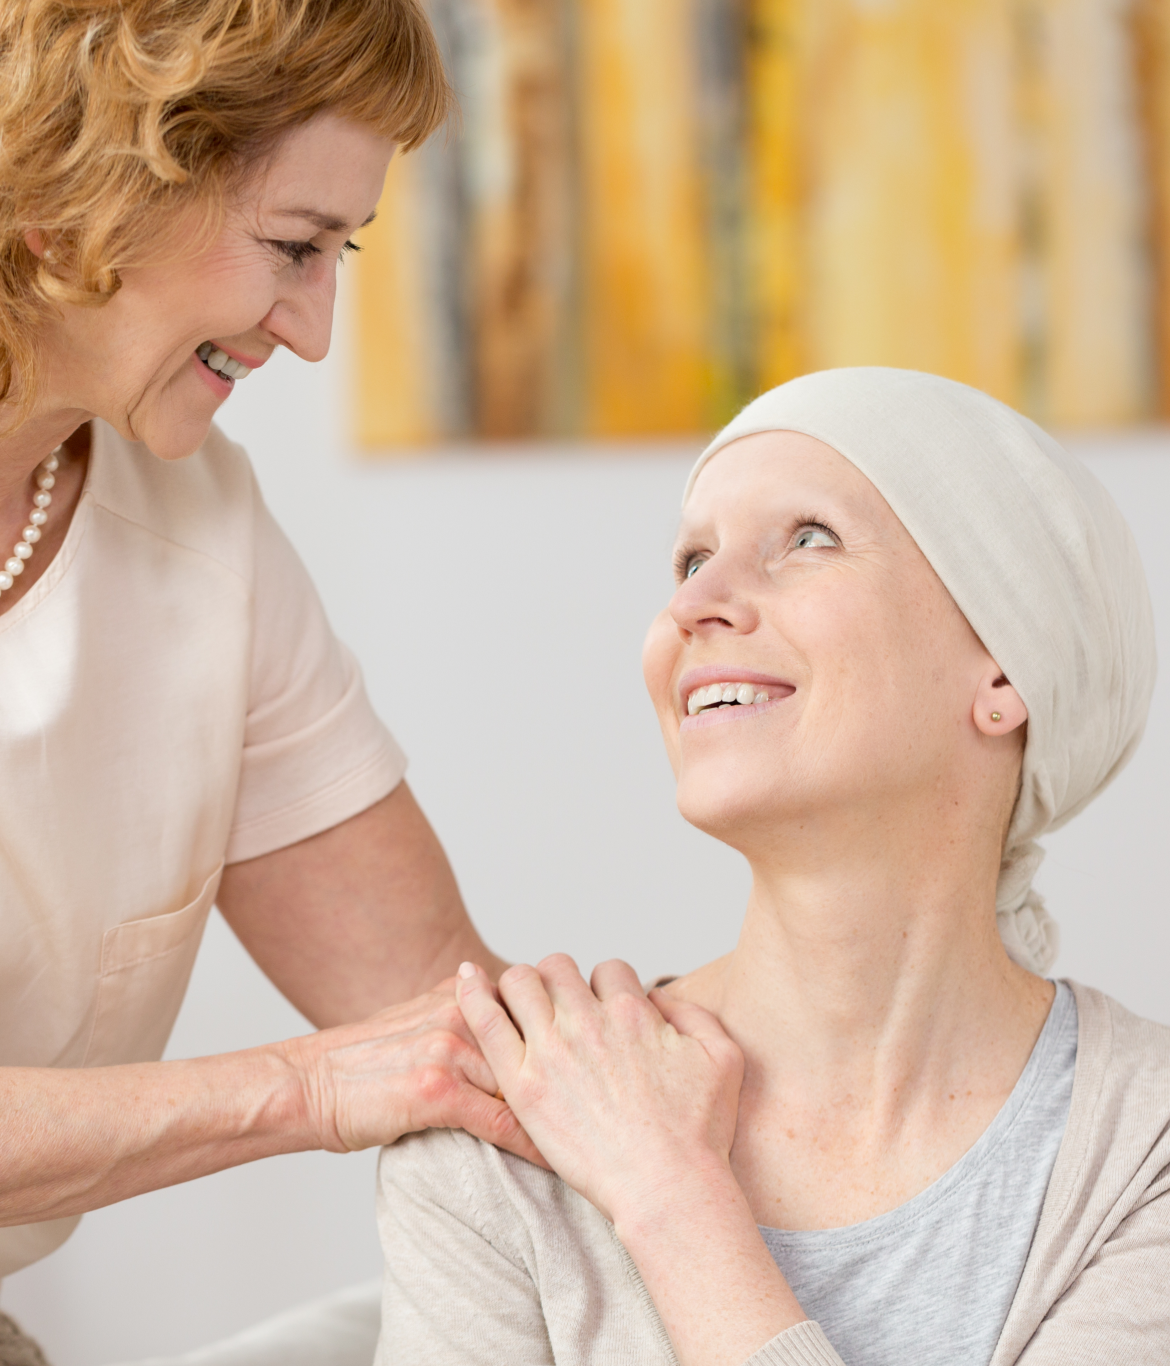 Cancer Patient and Caretaker